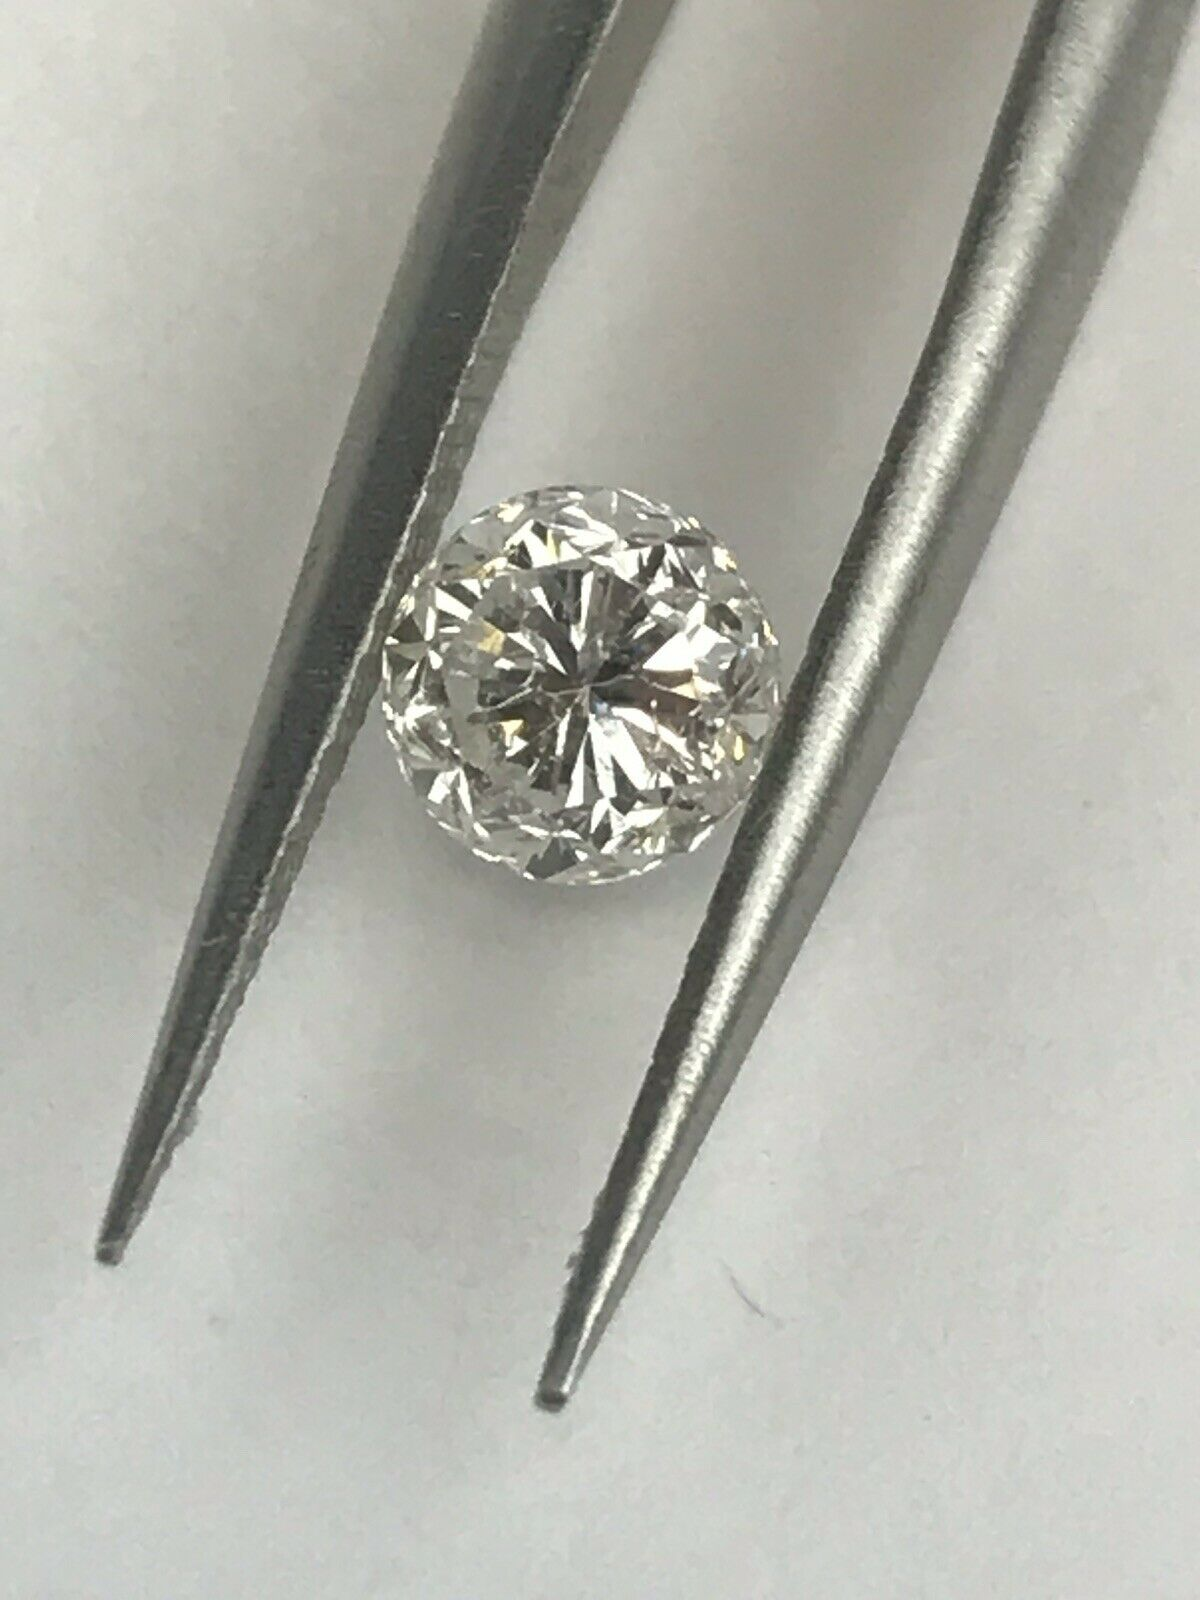 GIA Loose Certified .64 ct G I2 Round Brilliant Natural Diamond (stock # R5)